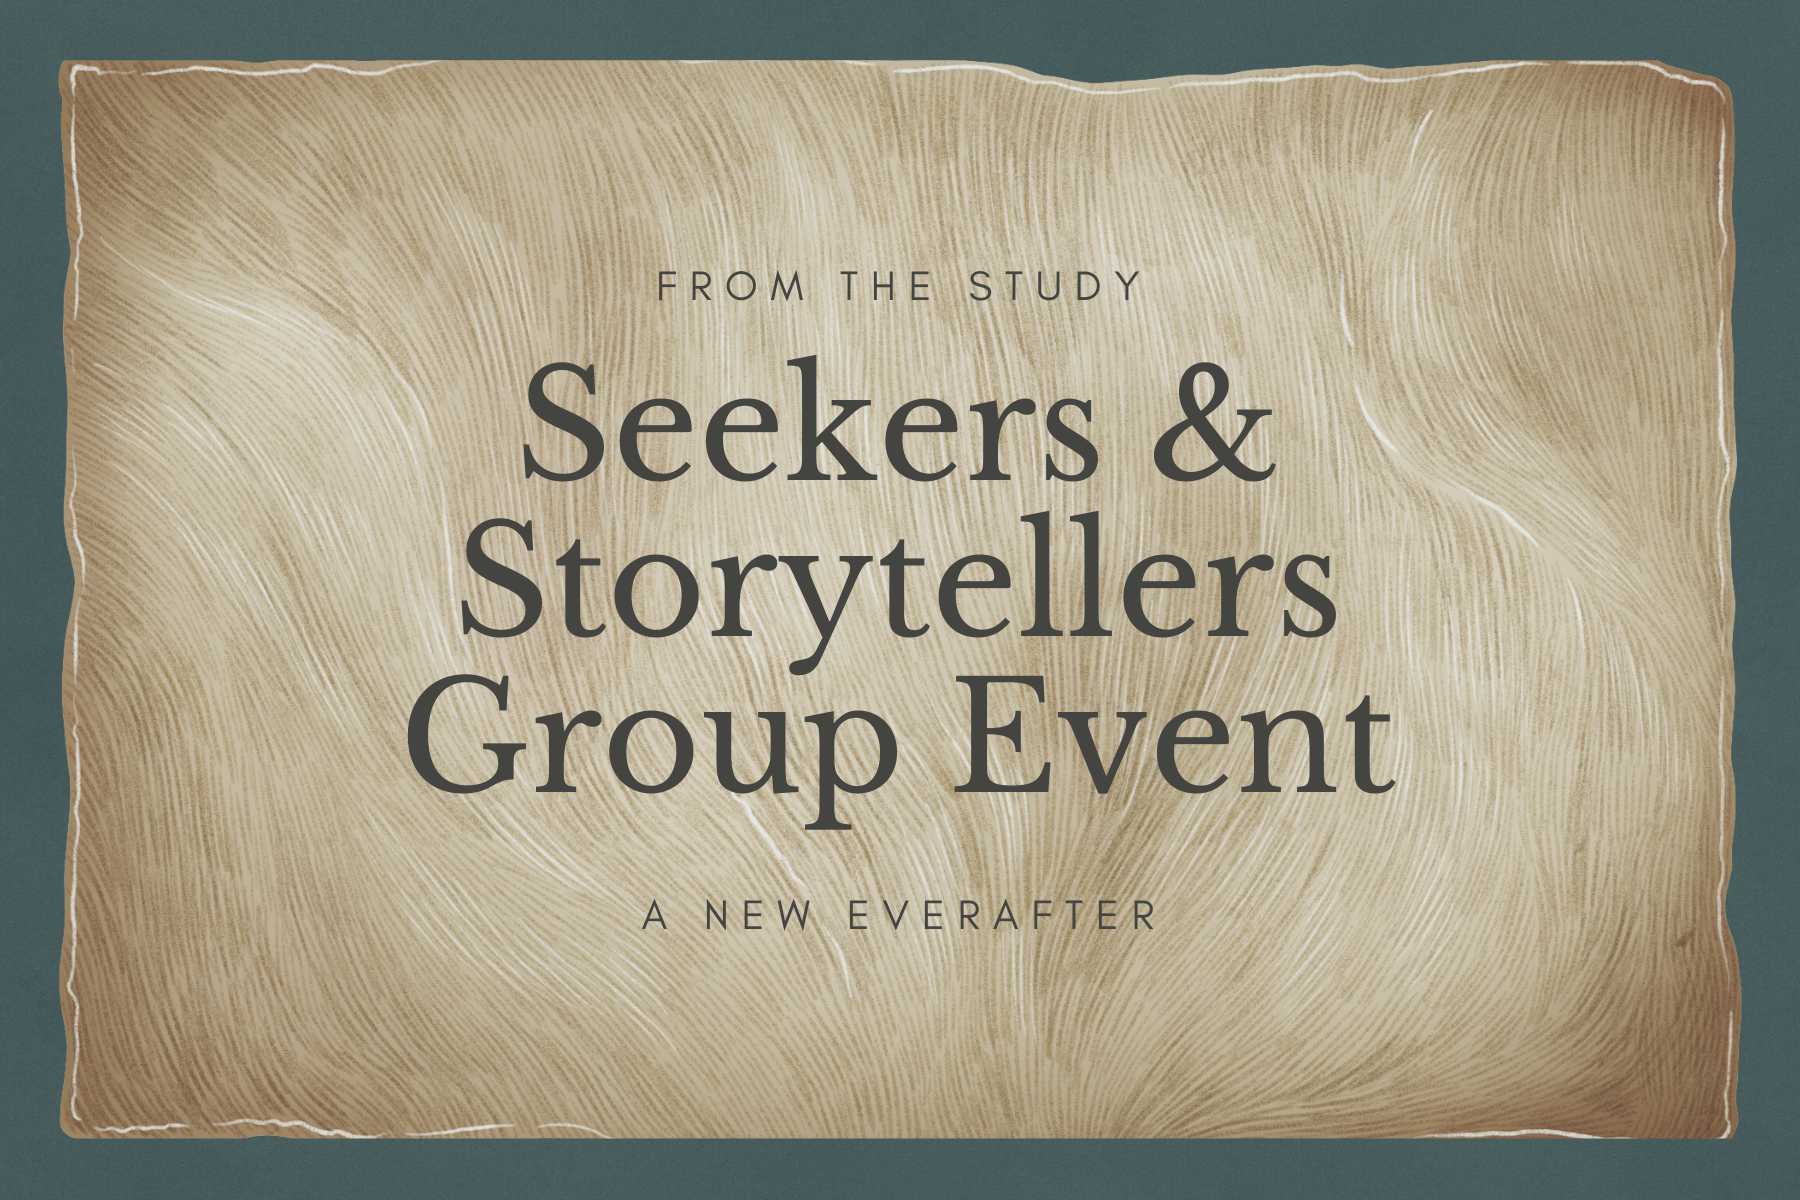 The Study Group Event